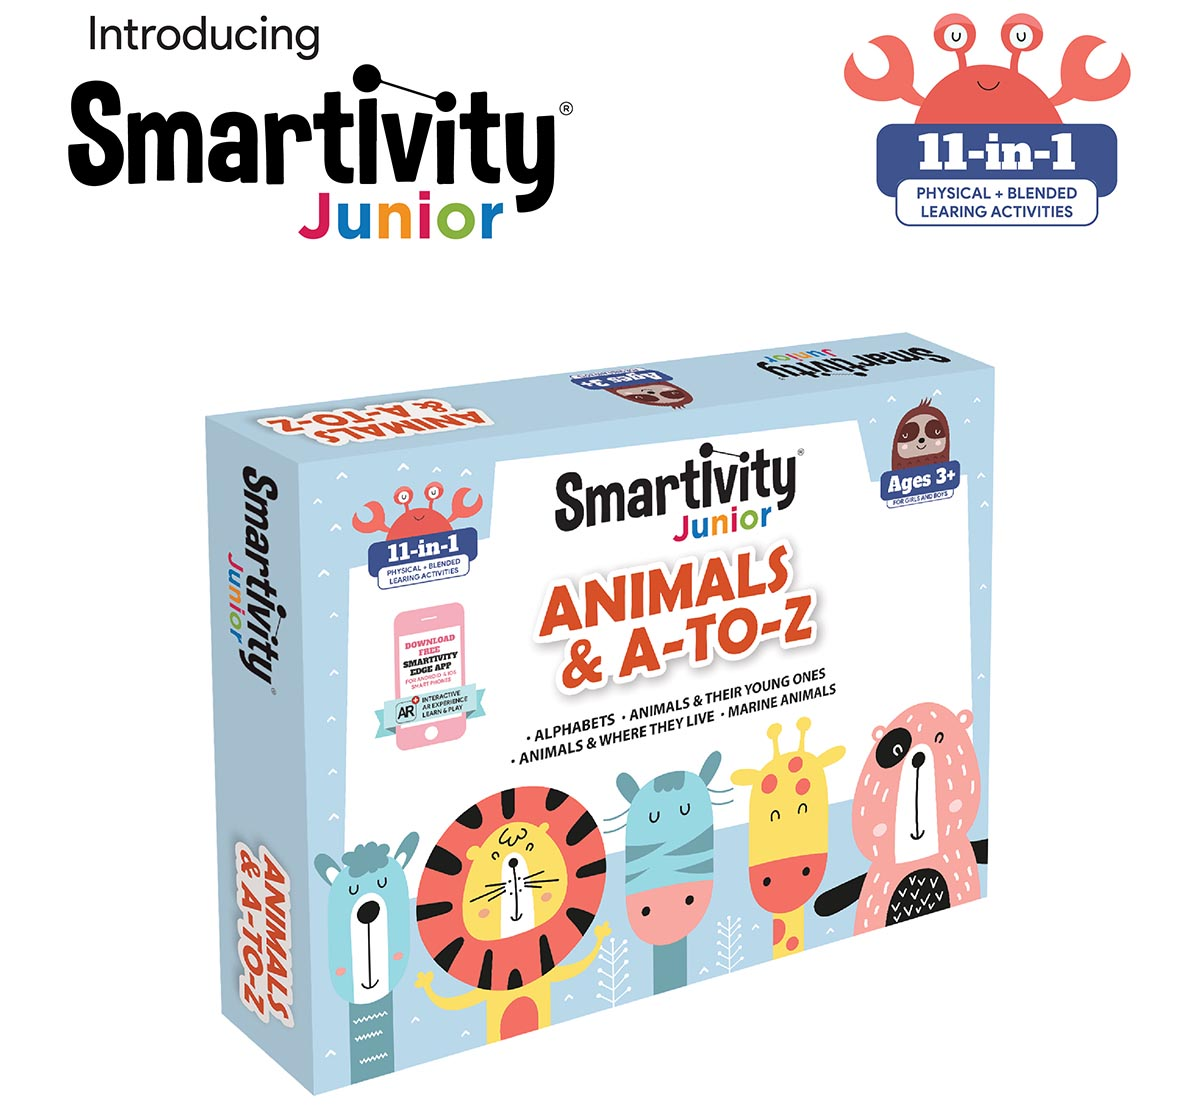 Smartivity   Smartivity Junior Animals & A-to-Z Pre-School STEAM Learning Educational Toy Art & Craft Play 11 in 1 Activity Kit